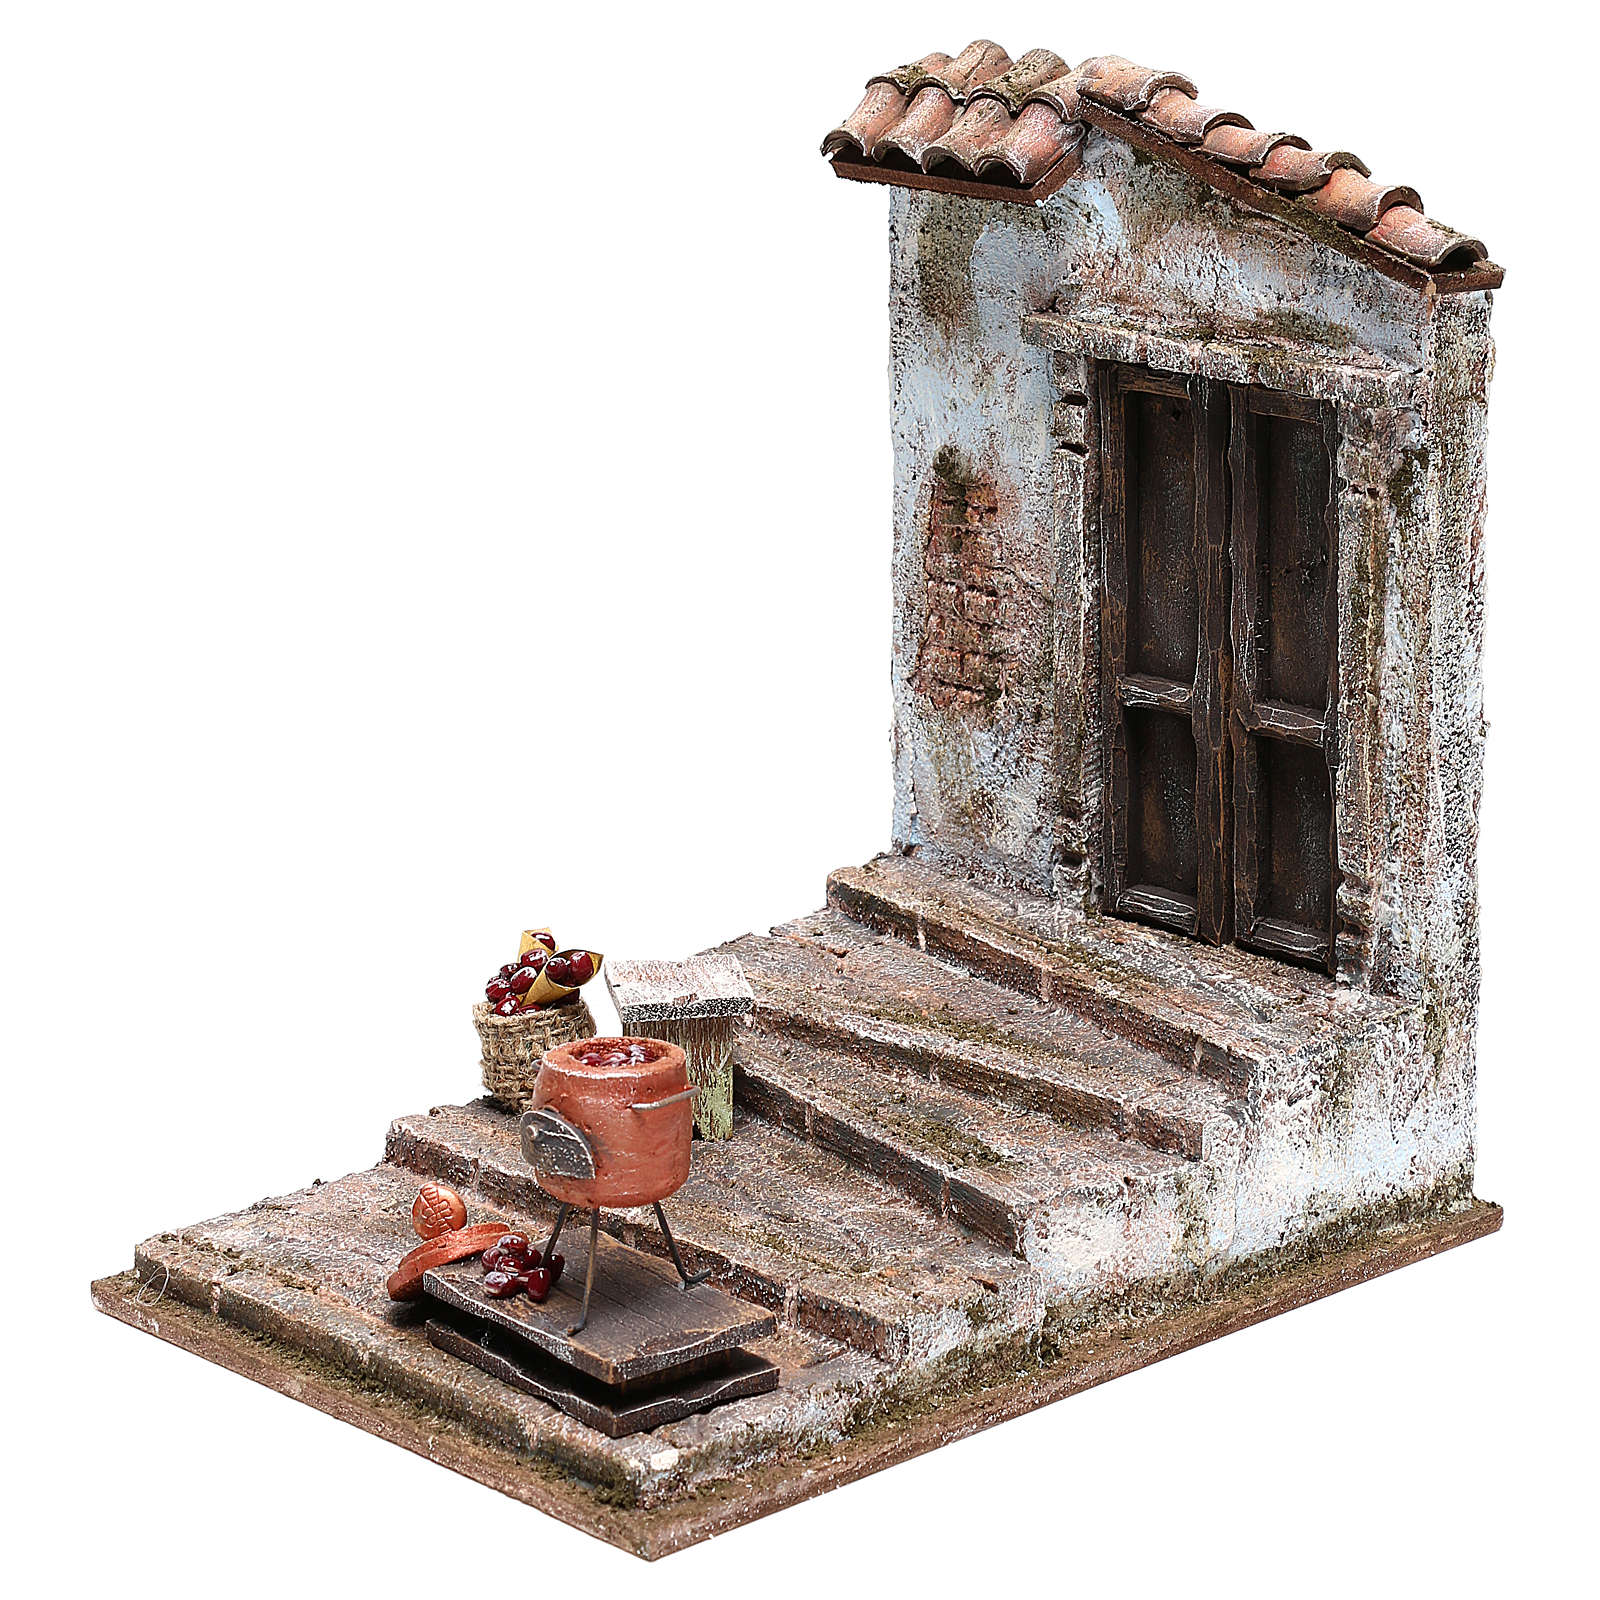 Chestnut seller setting 25x20x20 cm for Nativity scenes 12 cm 4